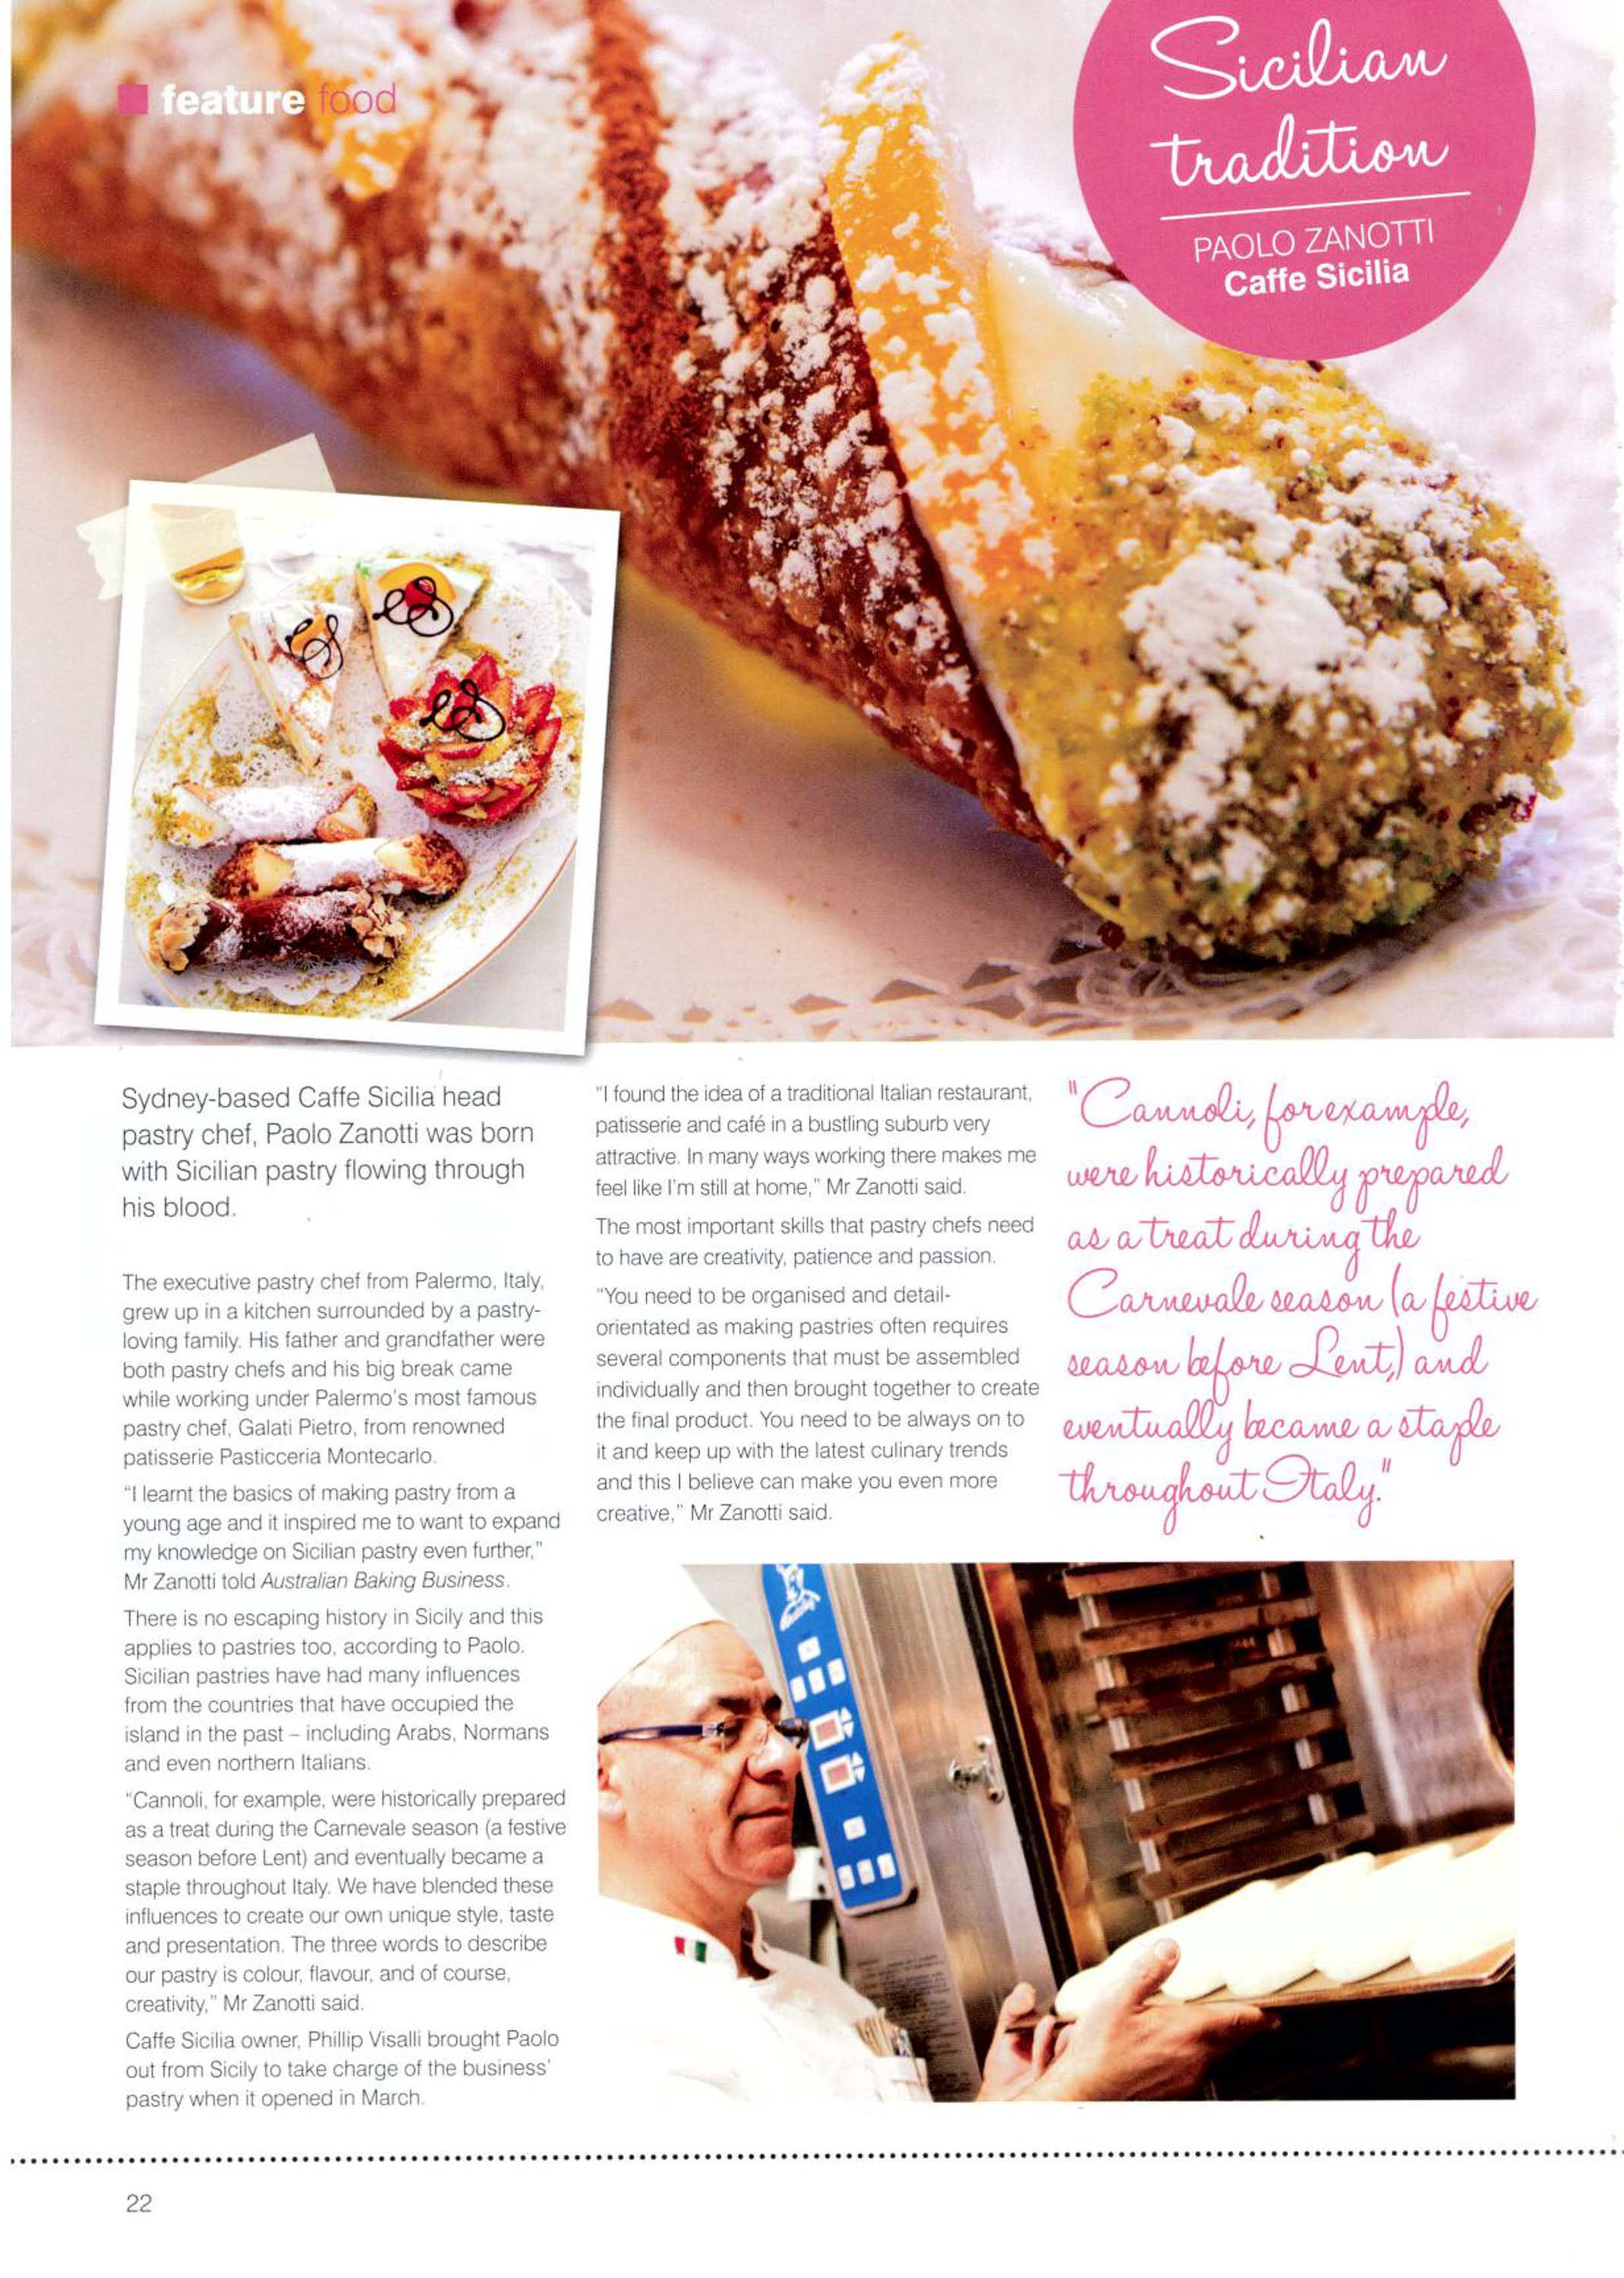 Australian Baking Business Magazine August-September 2011_000001.jpg